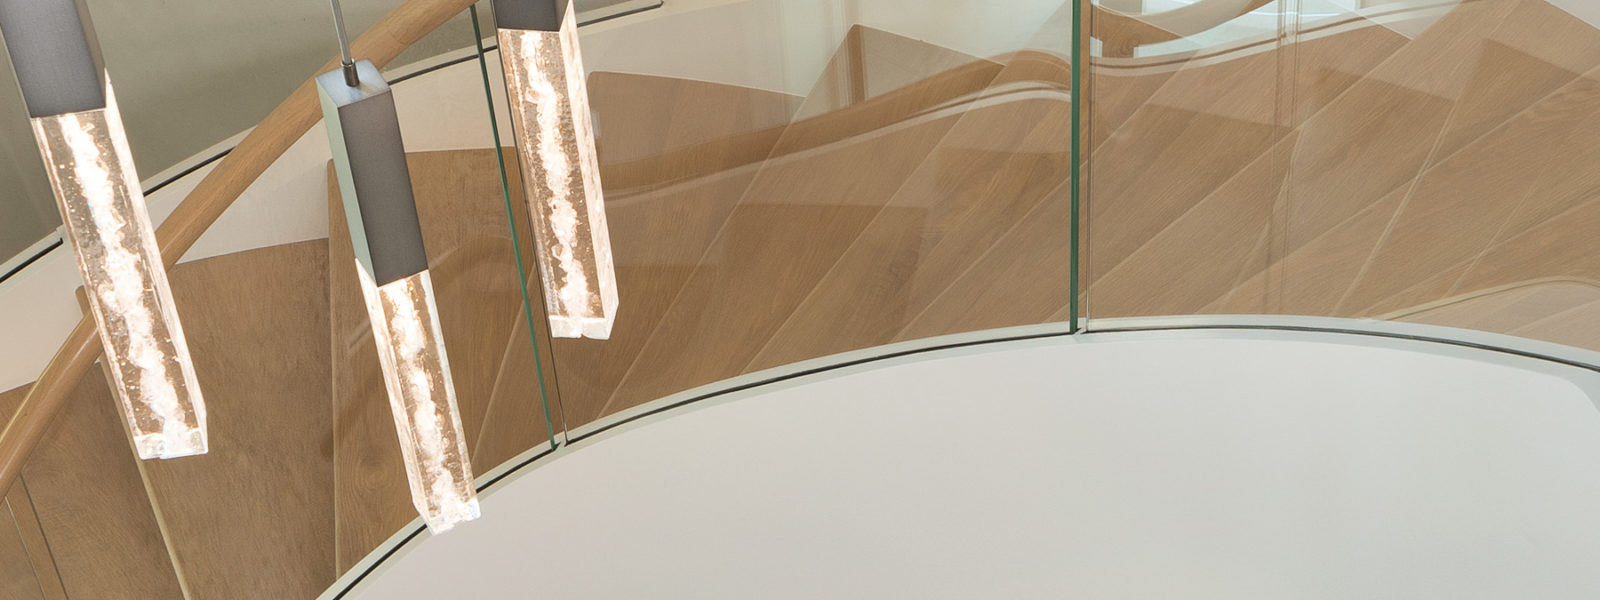 Modern Curved Spiral Stairway With Glass Balustrade and Integrated Lighting By Arcways